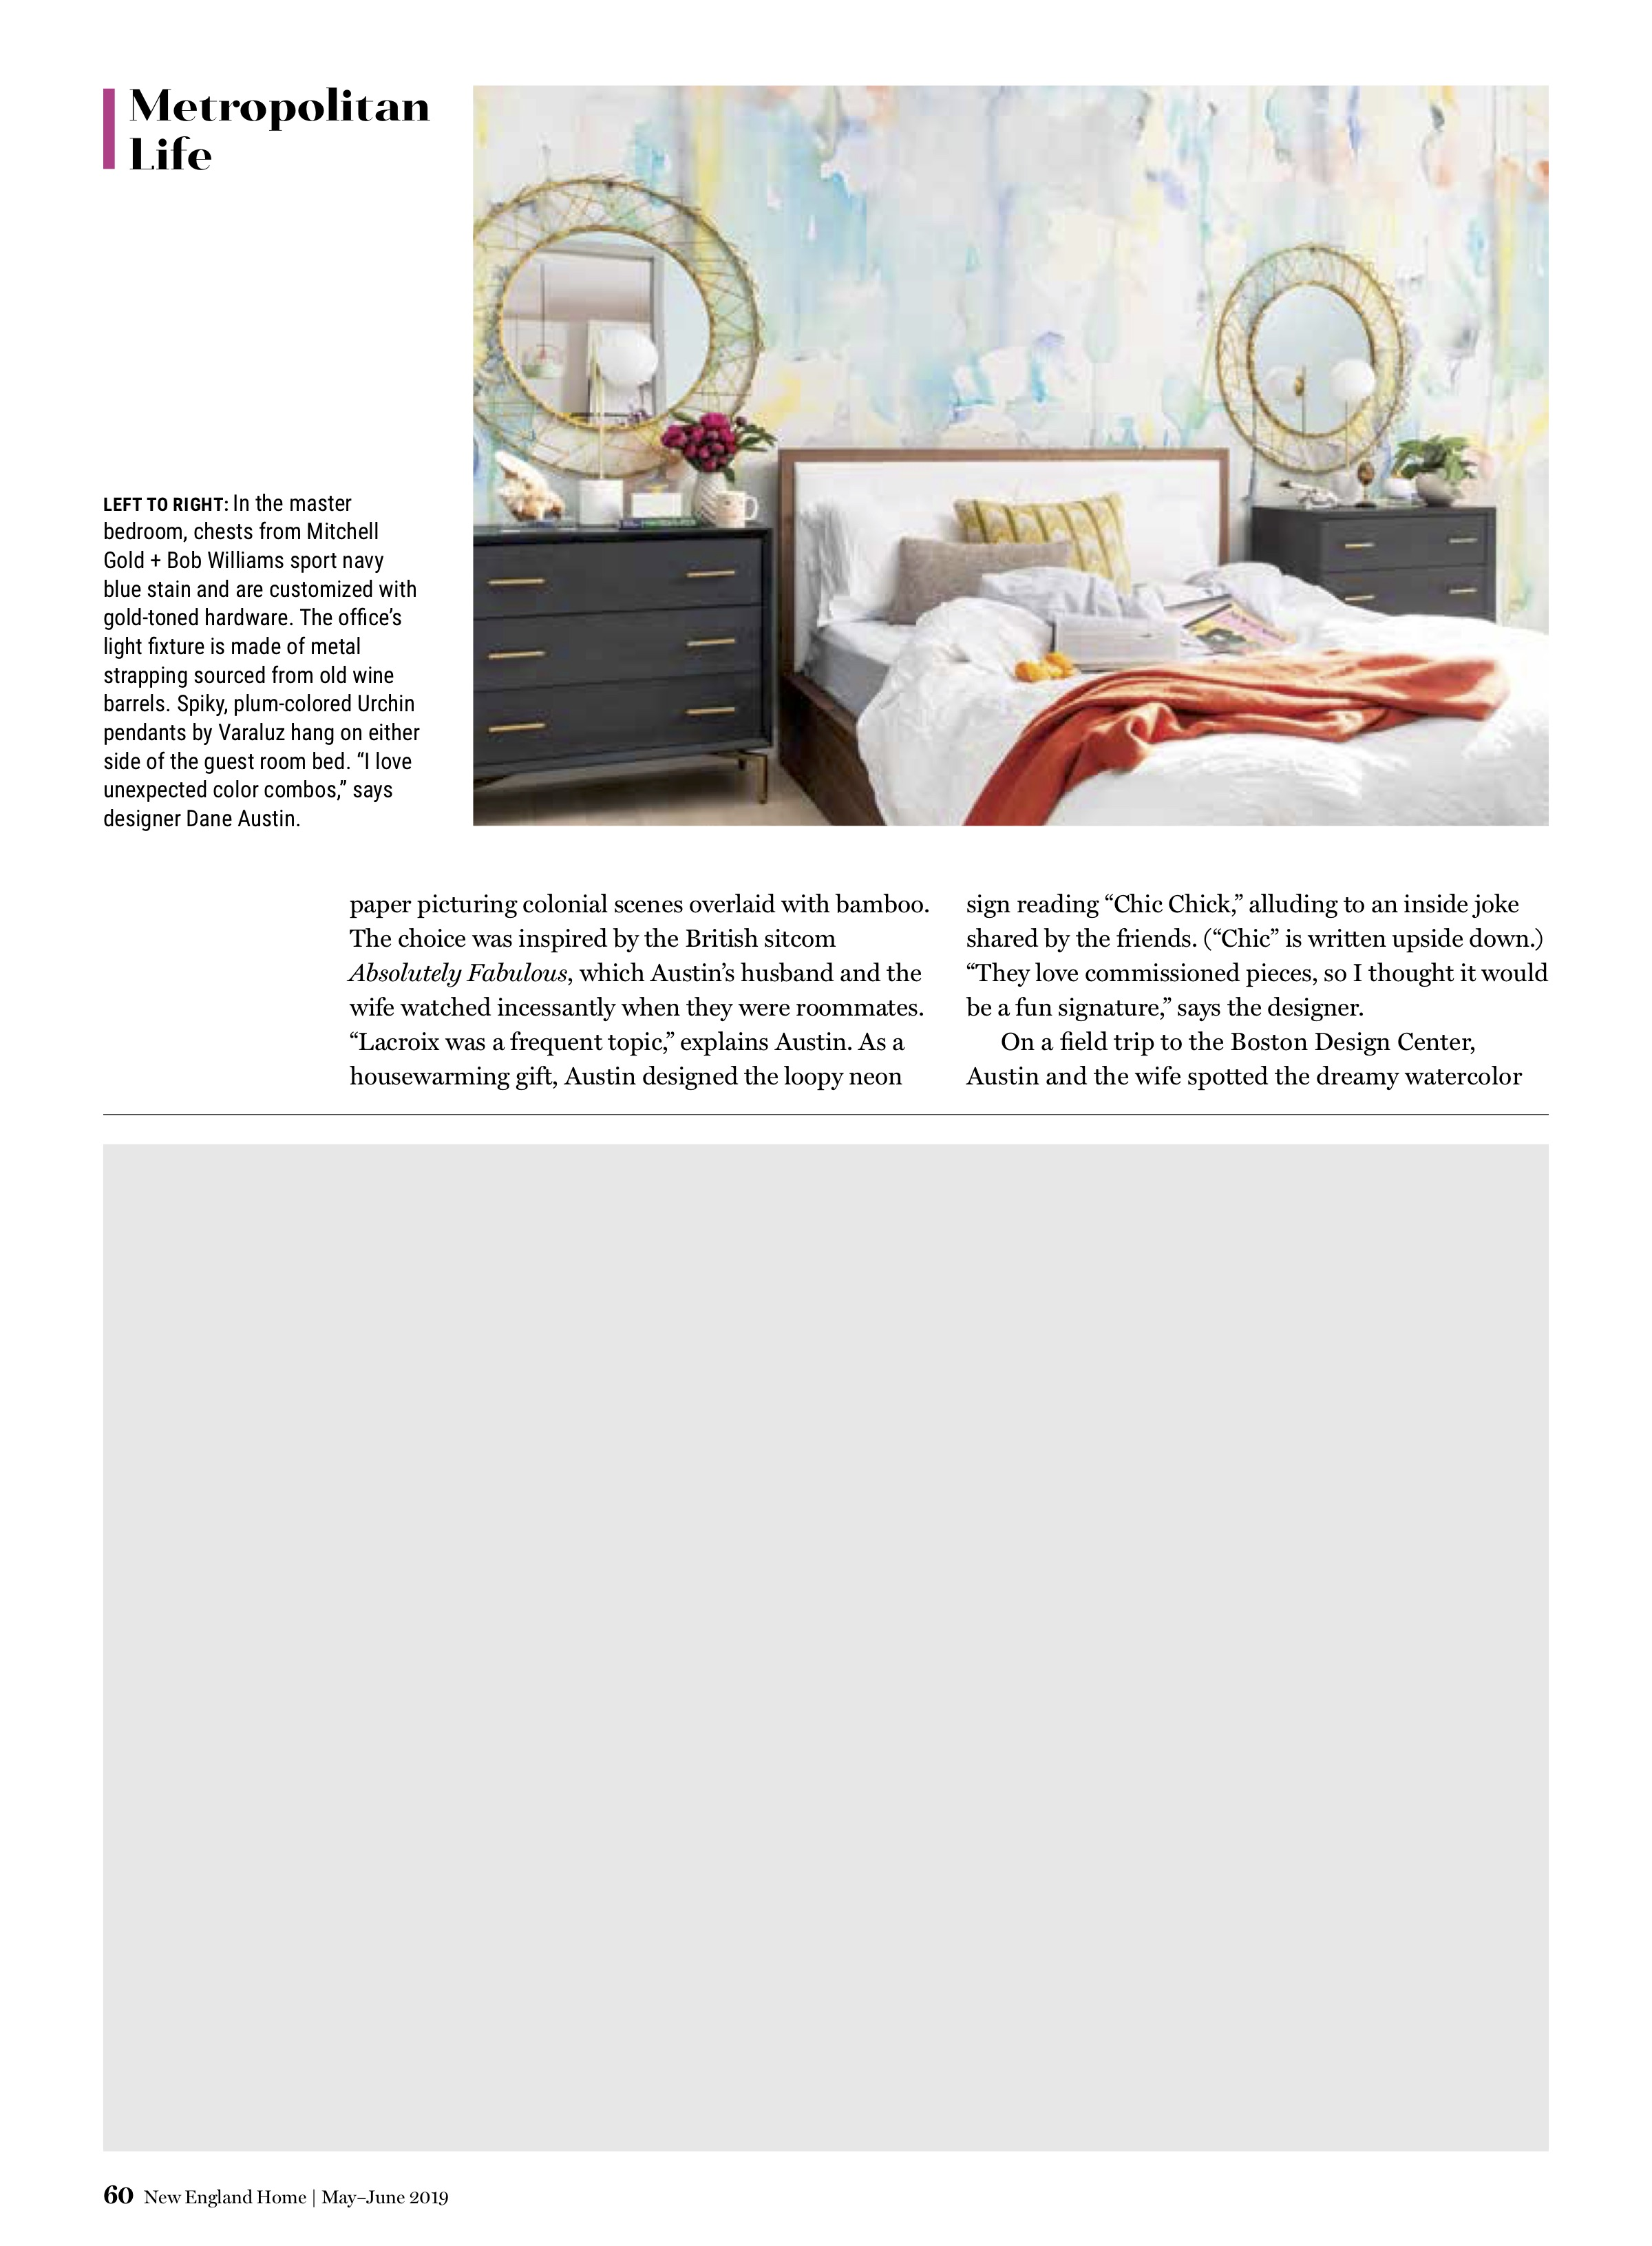 Dane Austin Design featured in New England Home May-June 2019 Page 4